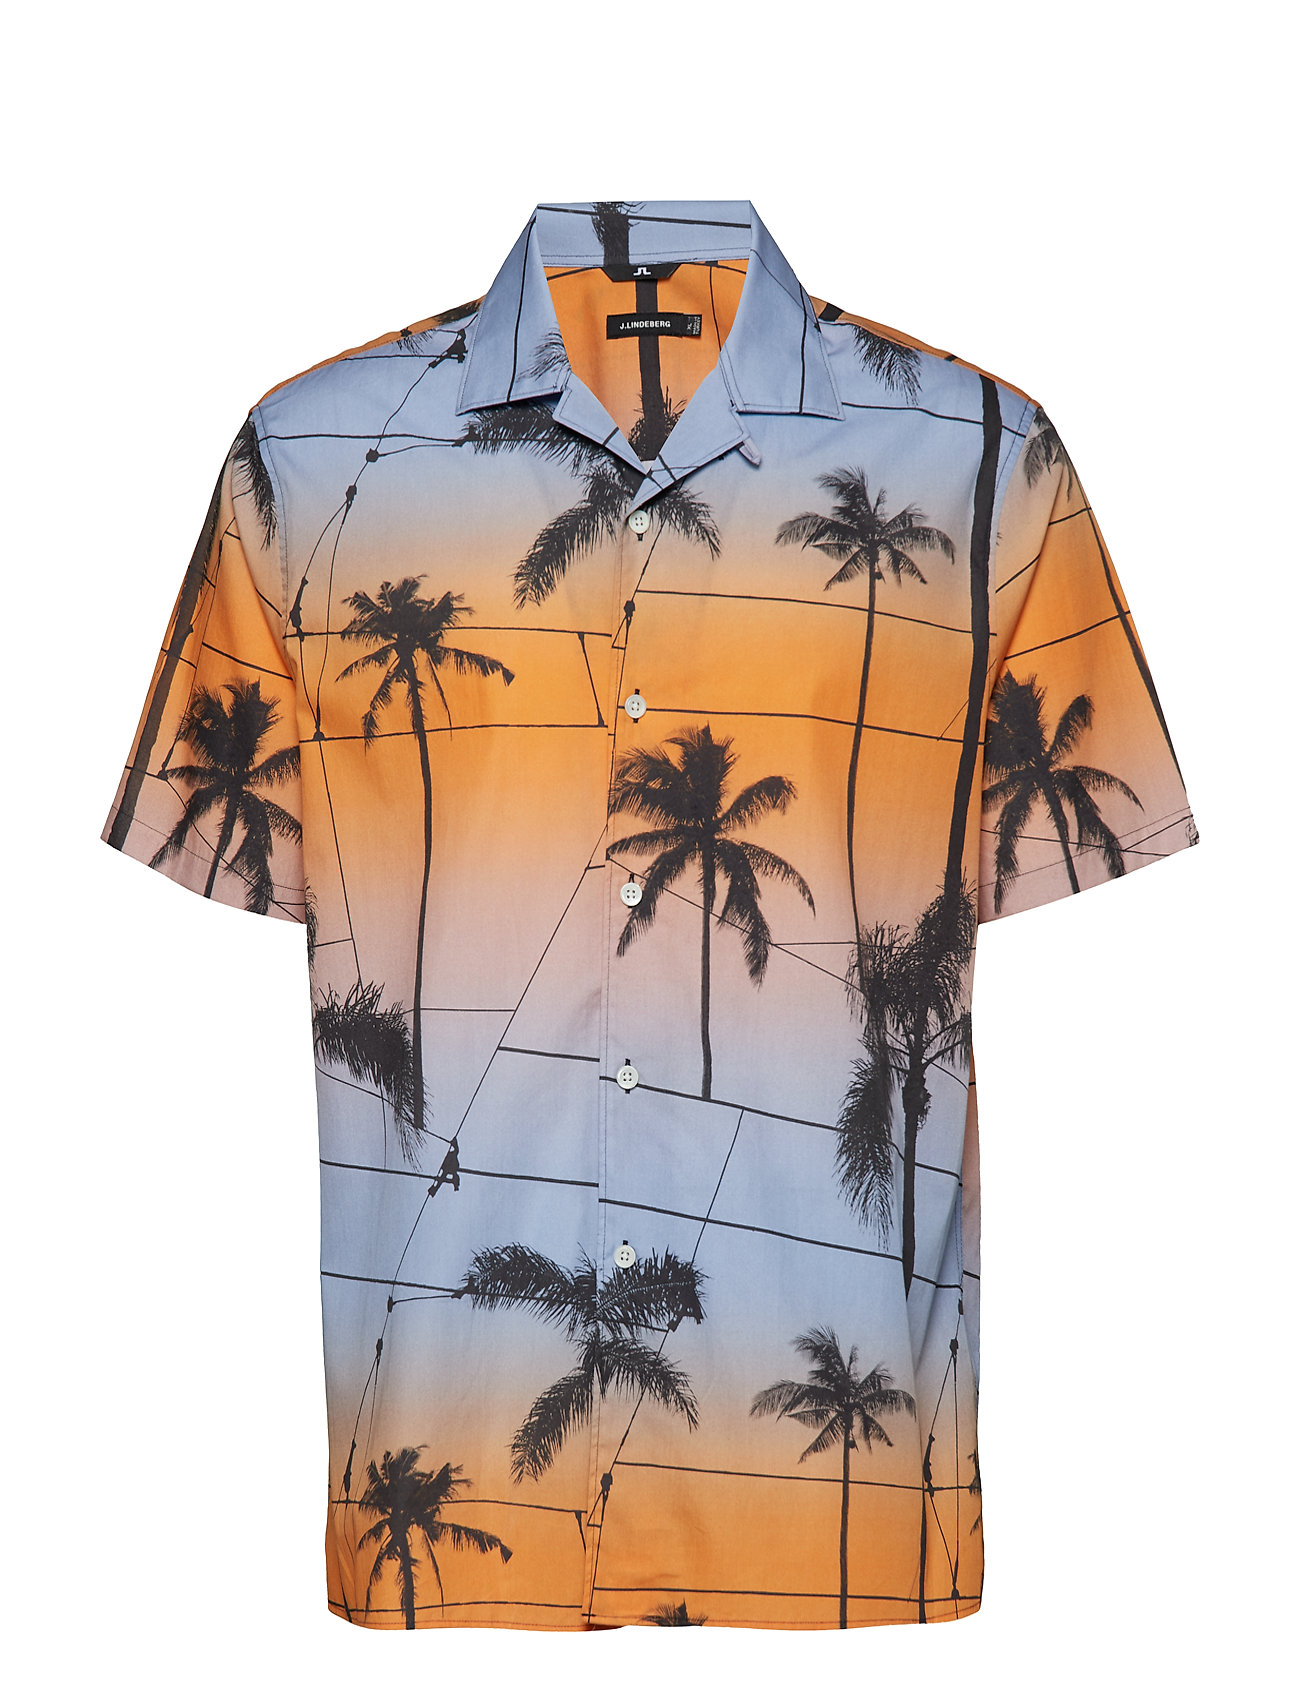 J. Lindeberg David SS Resort-Printed Palm - COOL PEACH